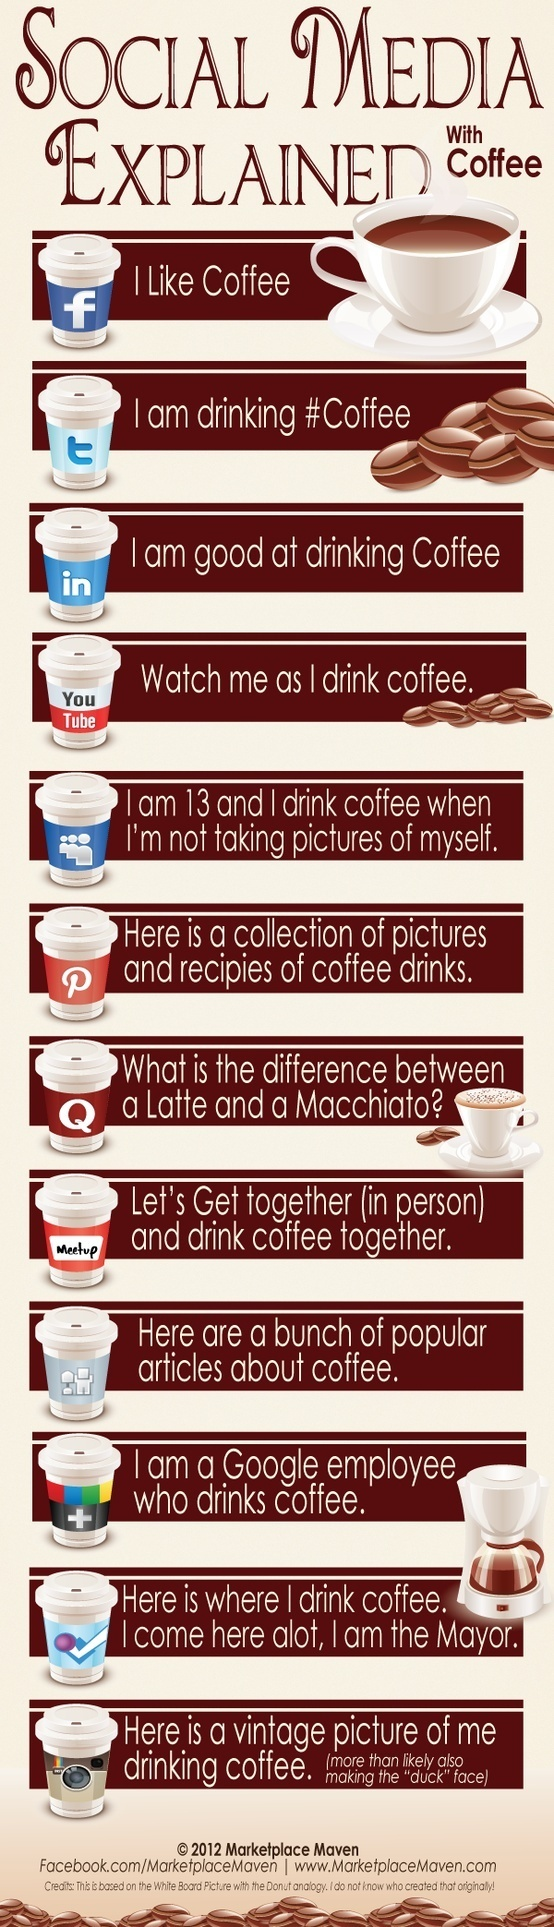 Social media, explained in Coffee infographic